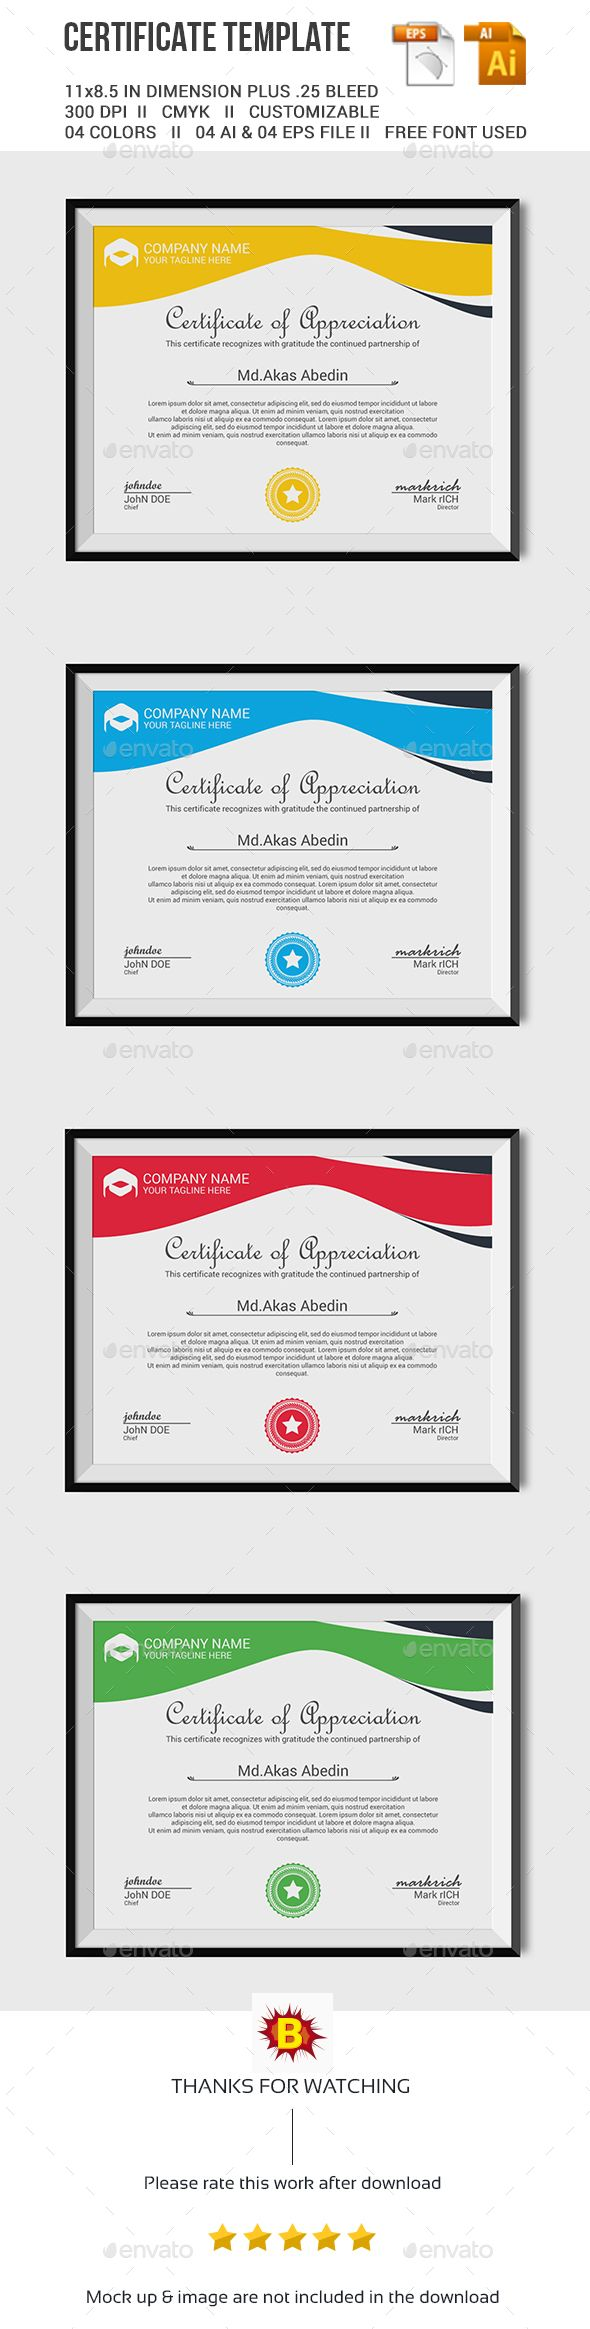 36 best certificate template images on pinterest certificate certificate template yadclub Choice Image